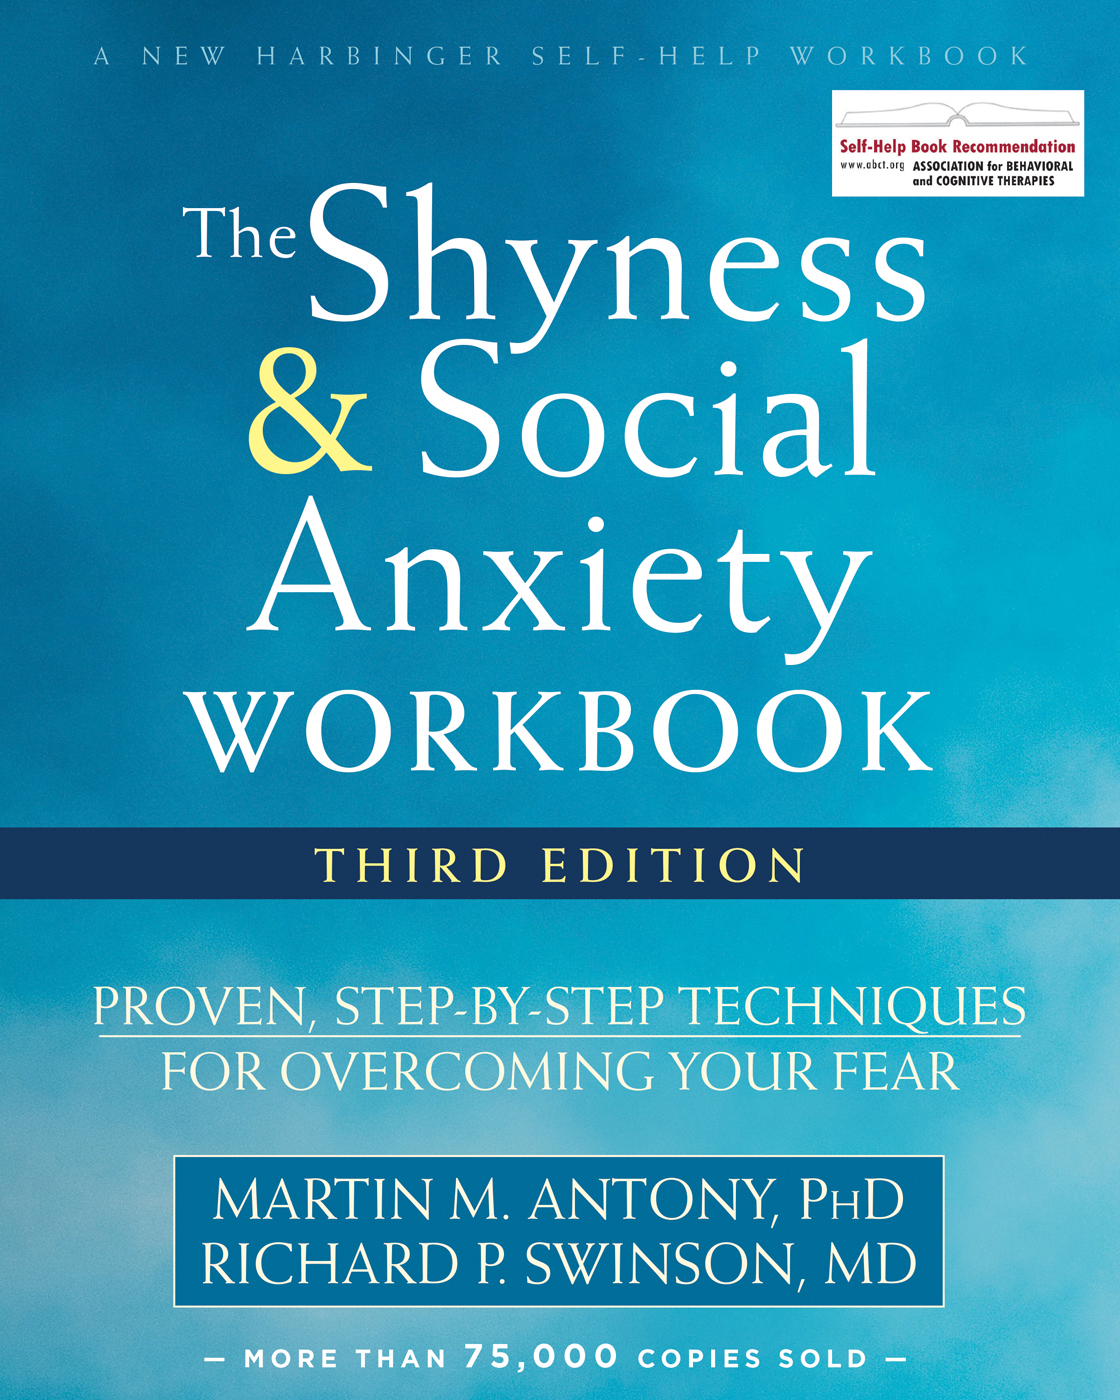 The Shyness and Social Anxiety Workbook Proven, Step-by-Step Techniques for Overcoming Your Fear, 3rd Edition